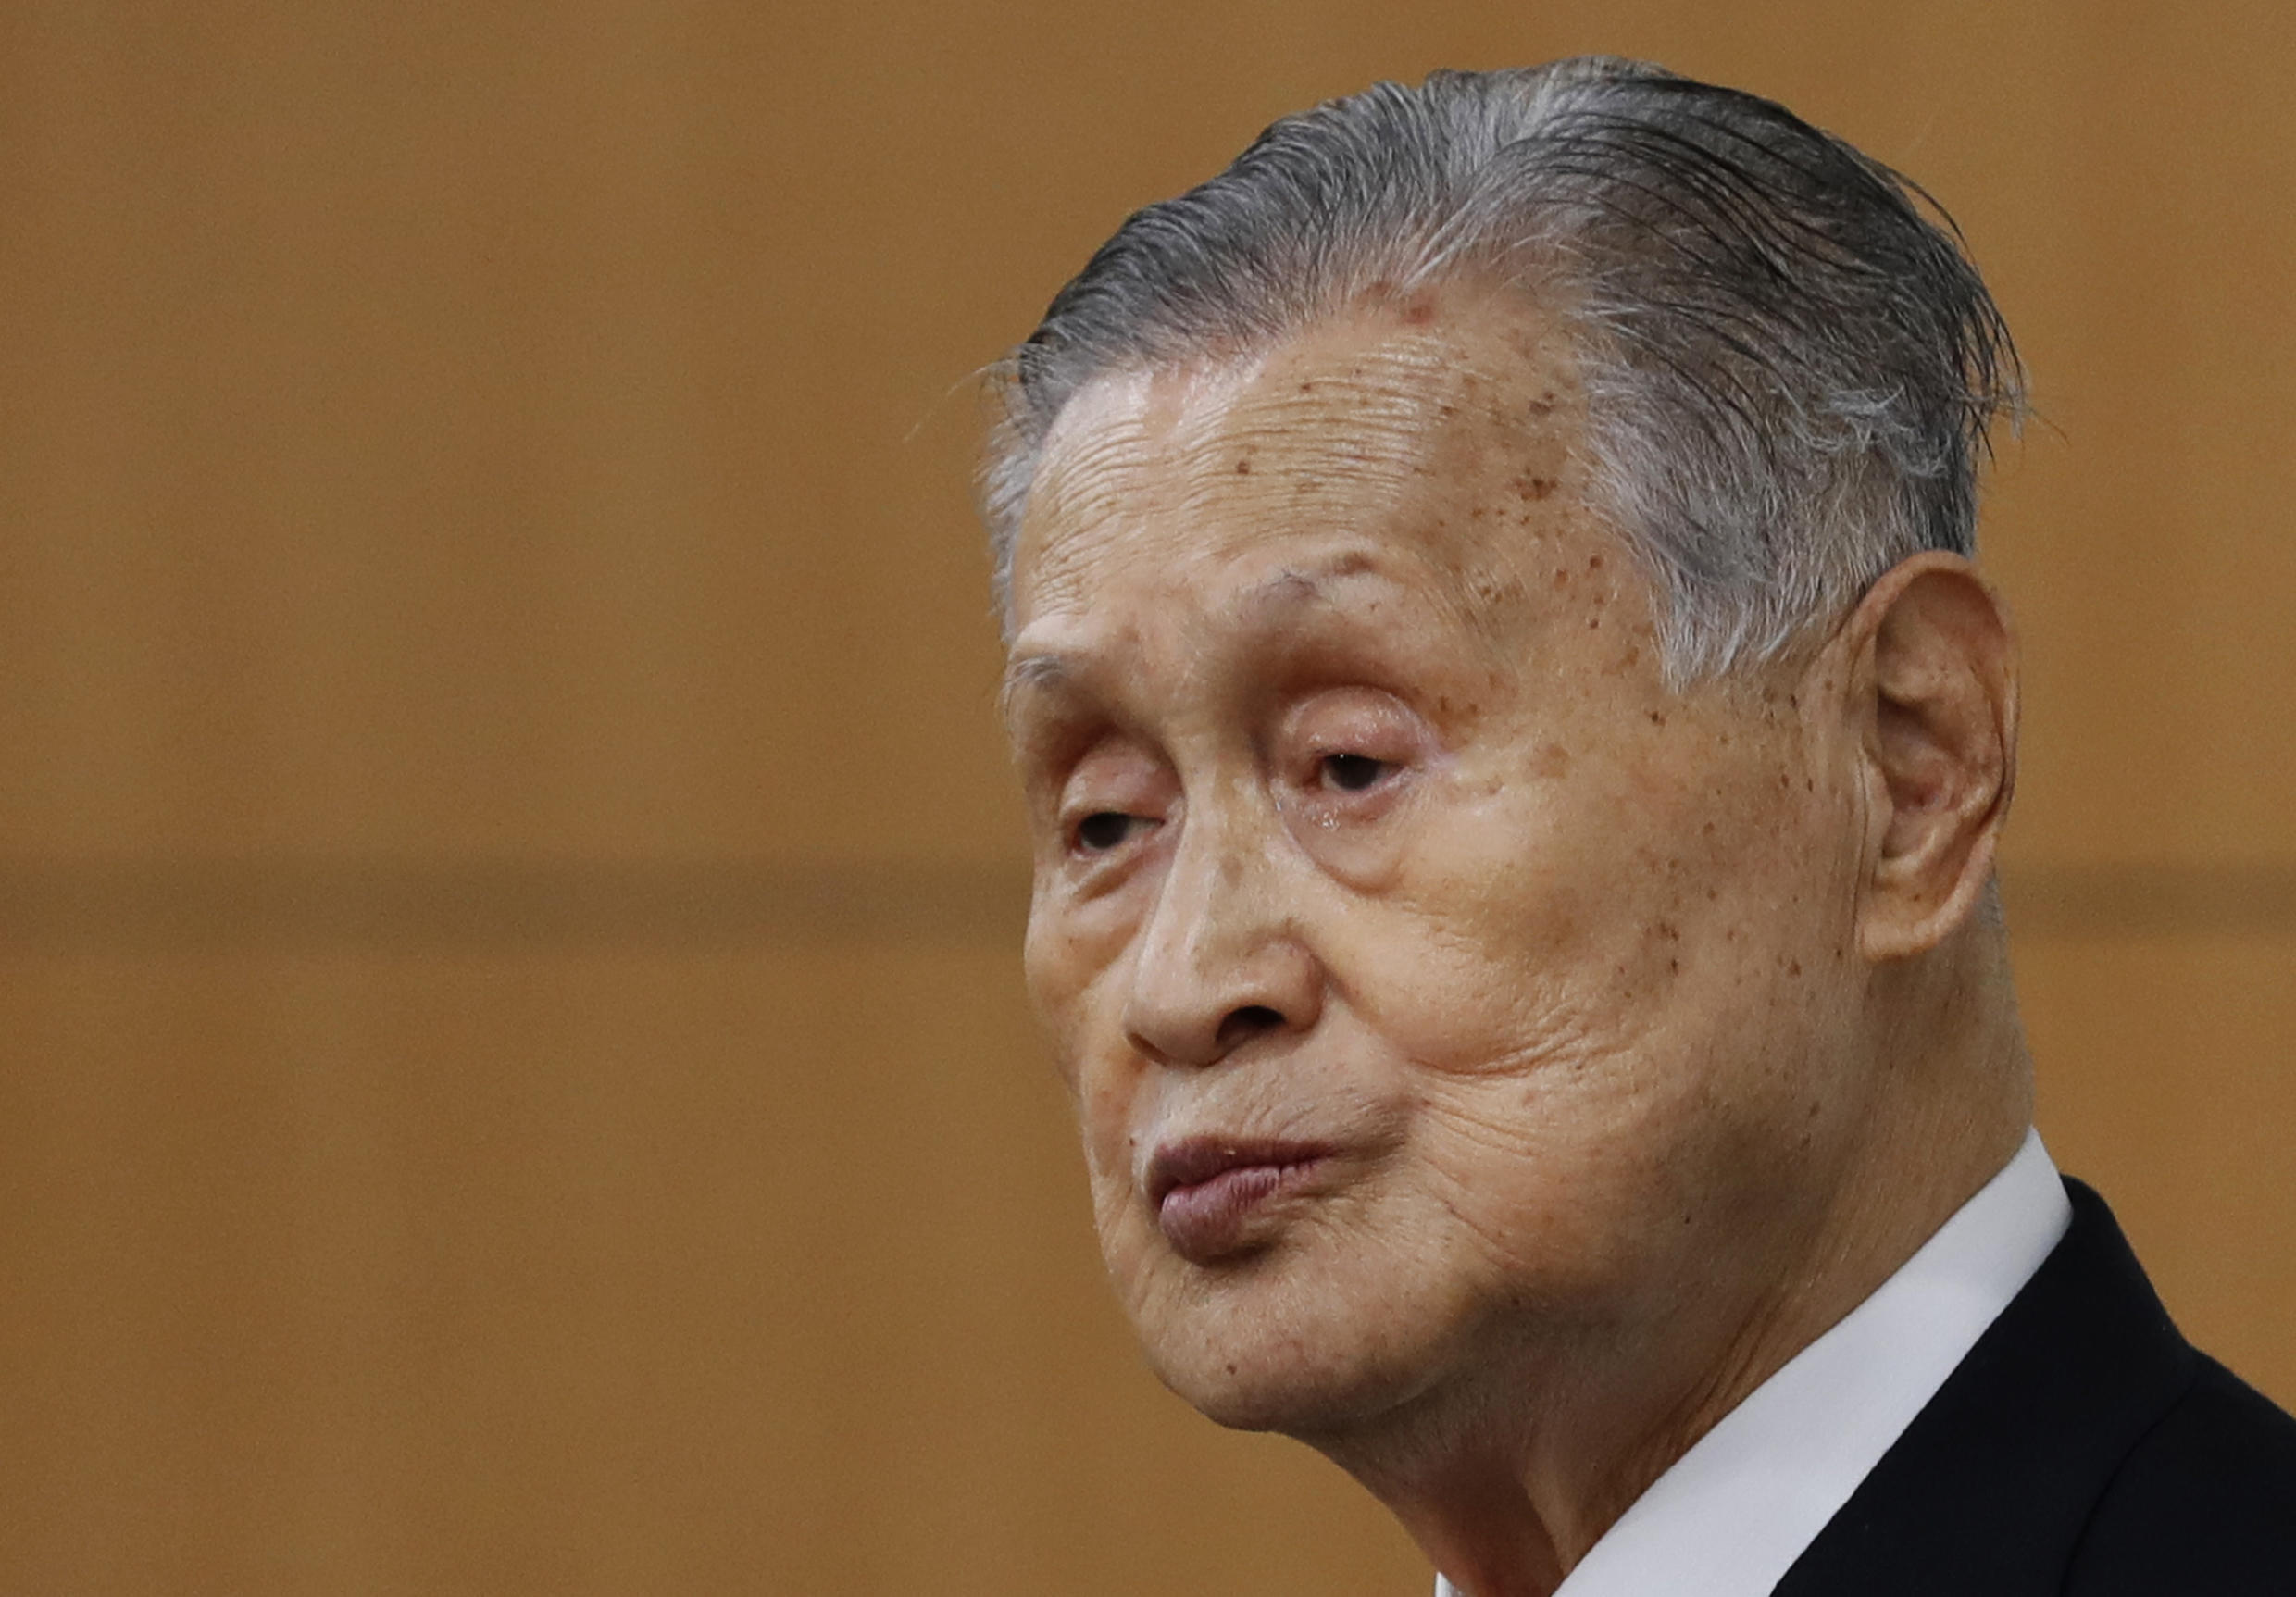 The 83-year-old former Japanese prime minister Yoshiro Mori is under fire for saying last week that women speak too much in meetings